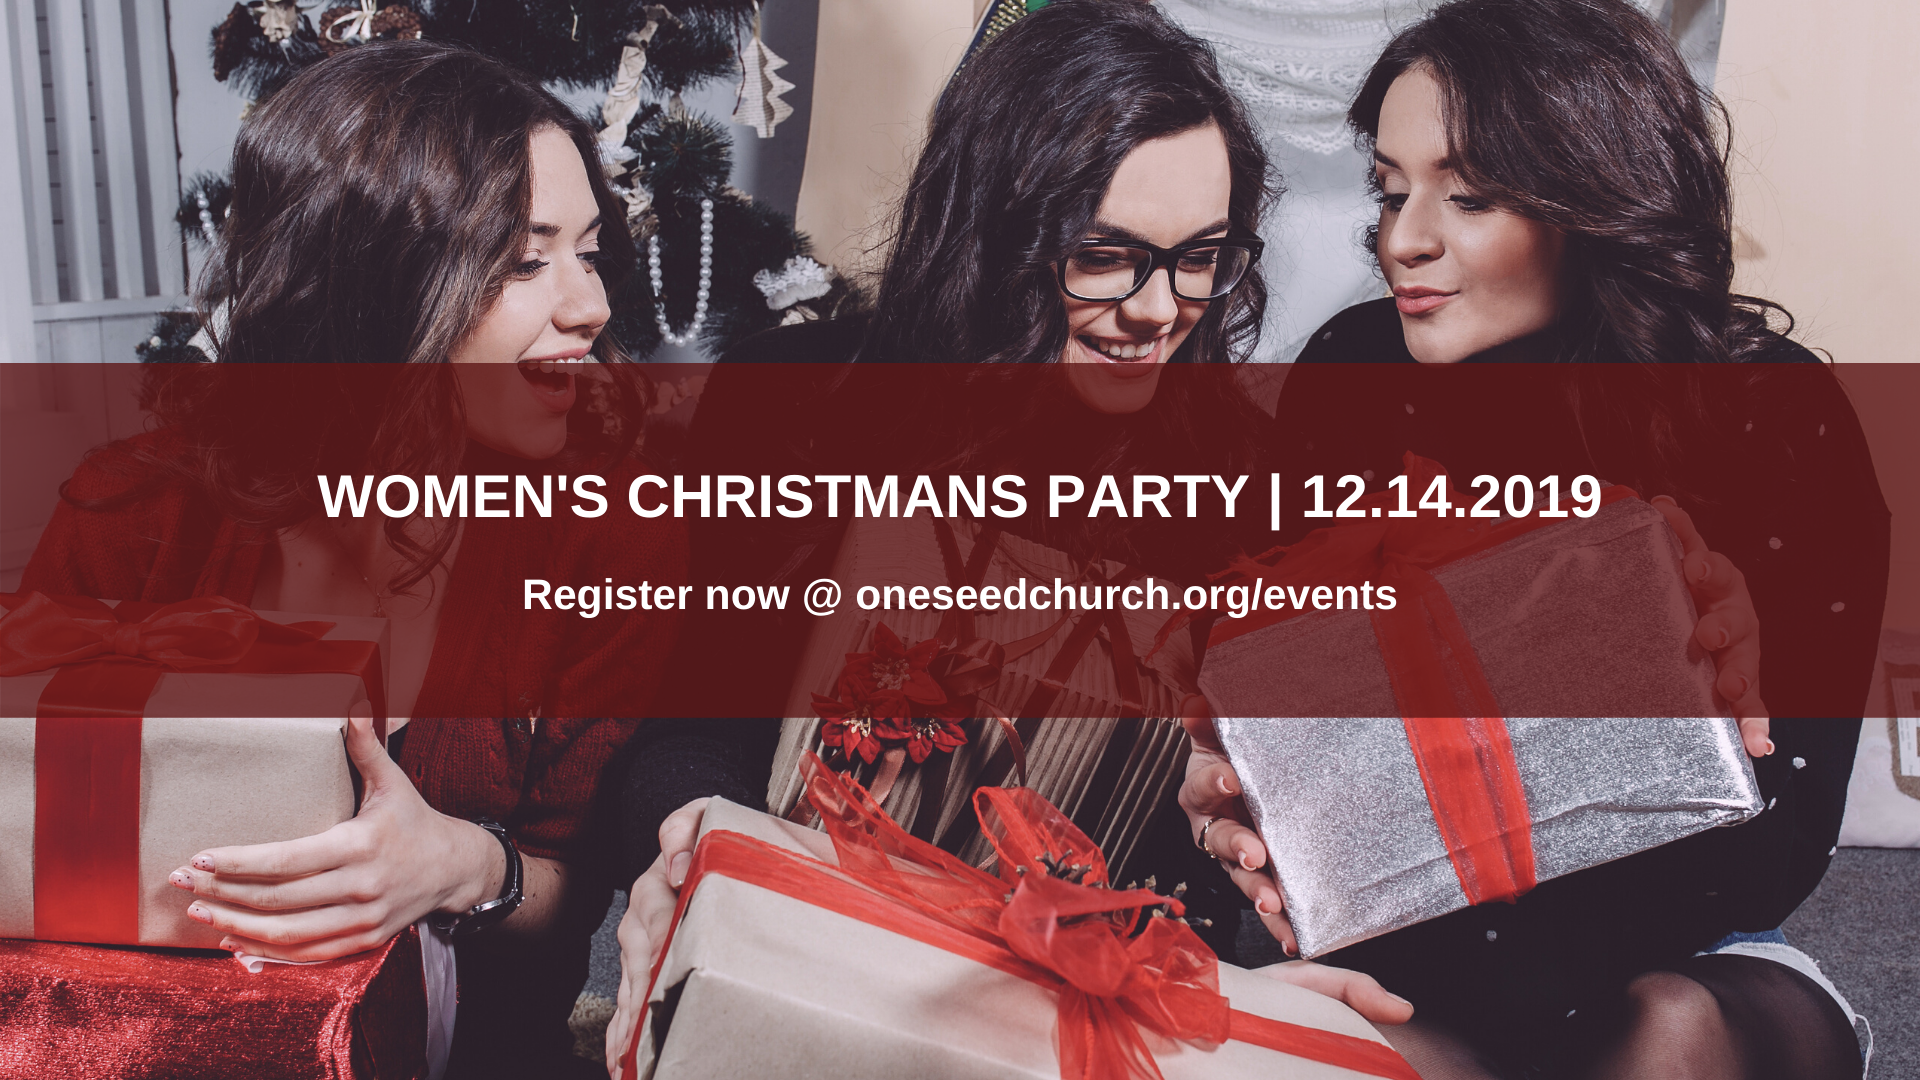 <p>Come and enjoy the fellowship of women, along with so many more surprises in store!</p>